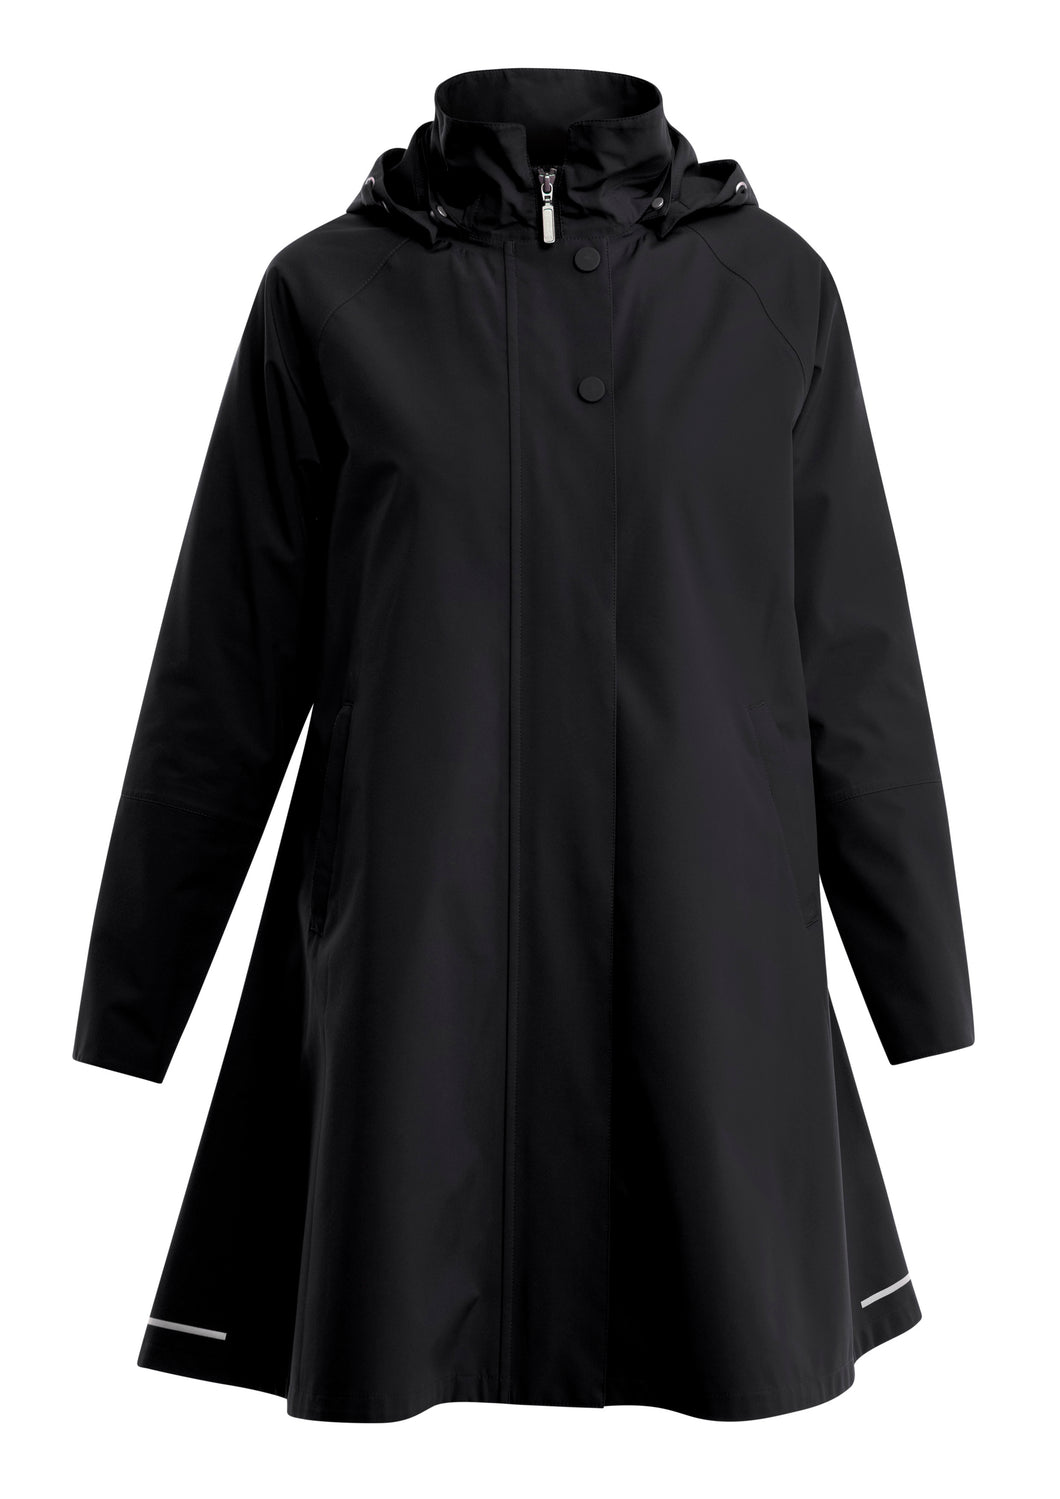 Æ-Rainwear <br> FIRENZE BLACK